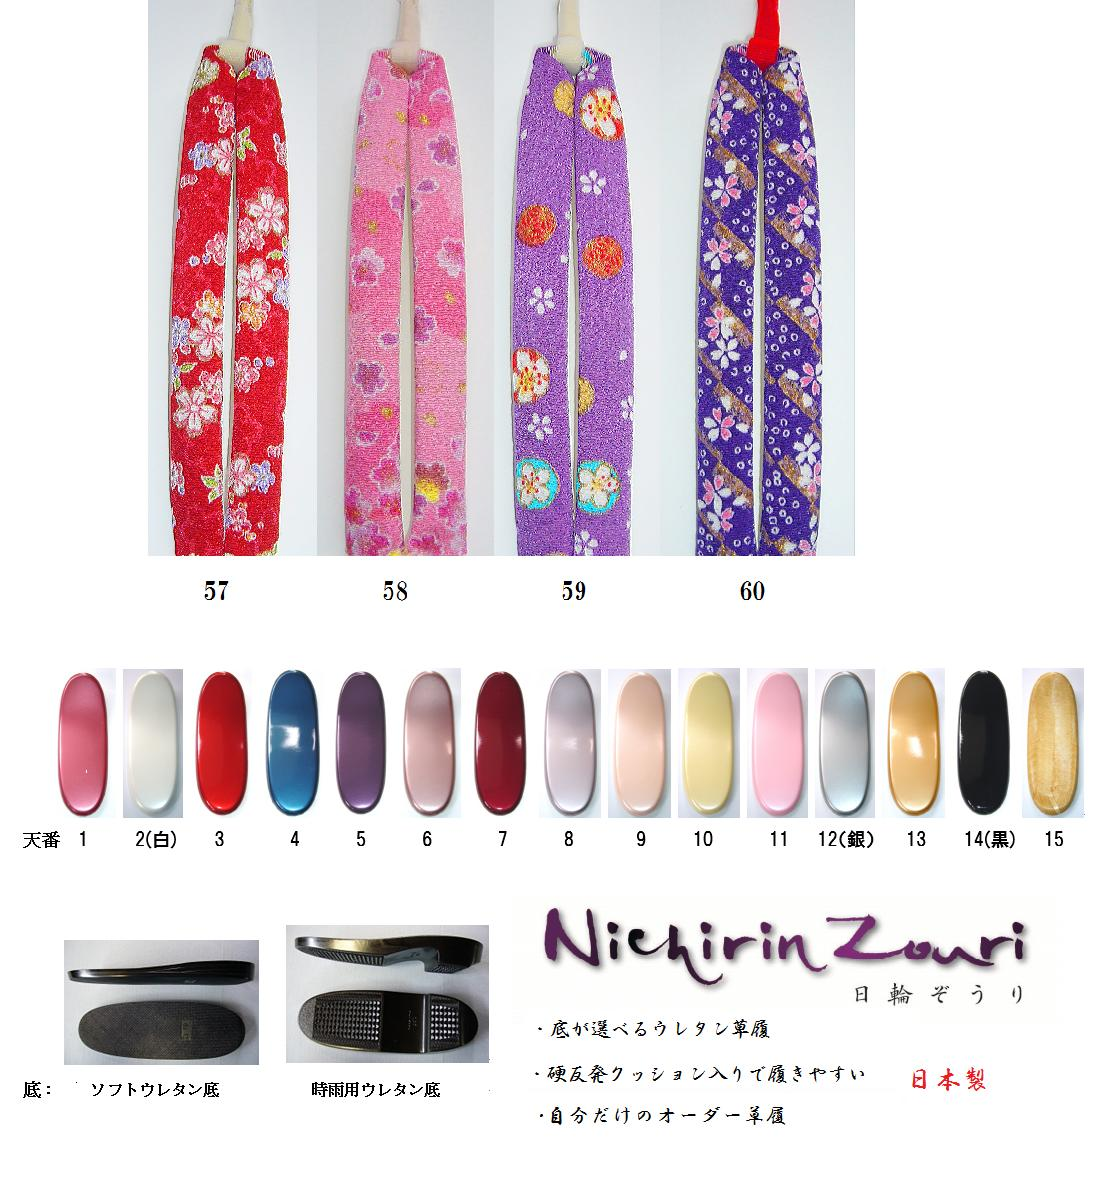 Choose from the bottom is urethane sandals! Nichirin Zouri-hinowa thongs-L(23.5cm) graduation ceremony, entrance ceremony, wedding, wedding reception, such as